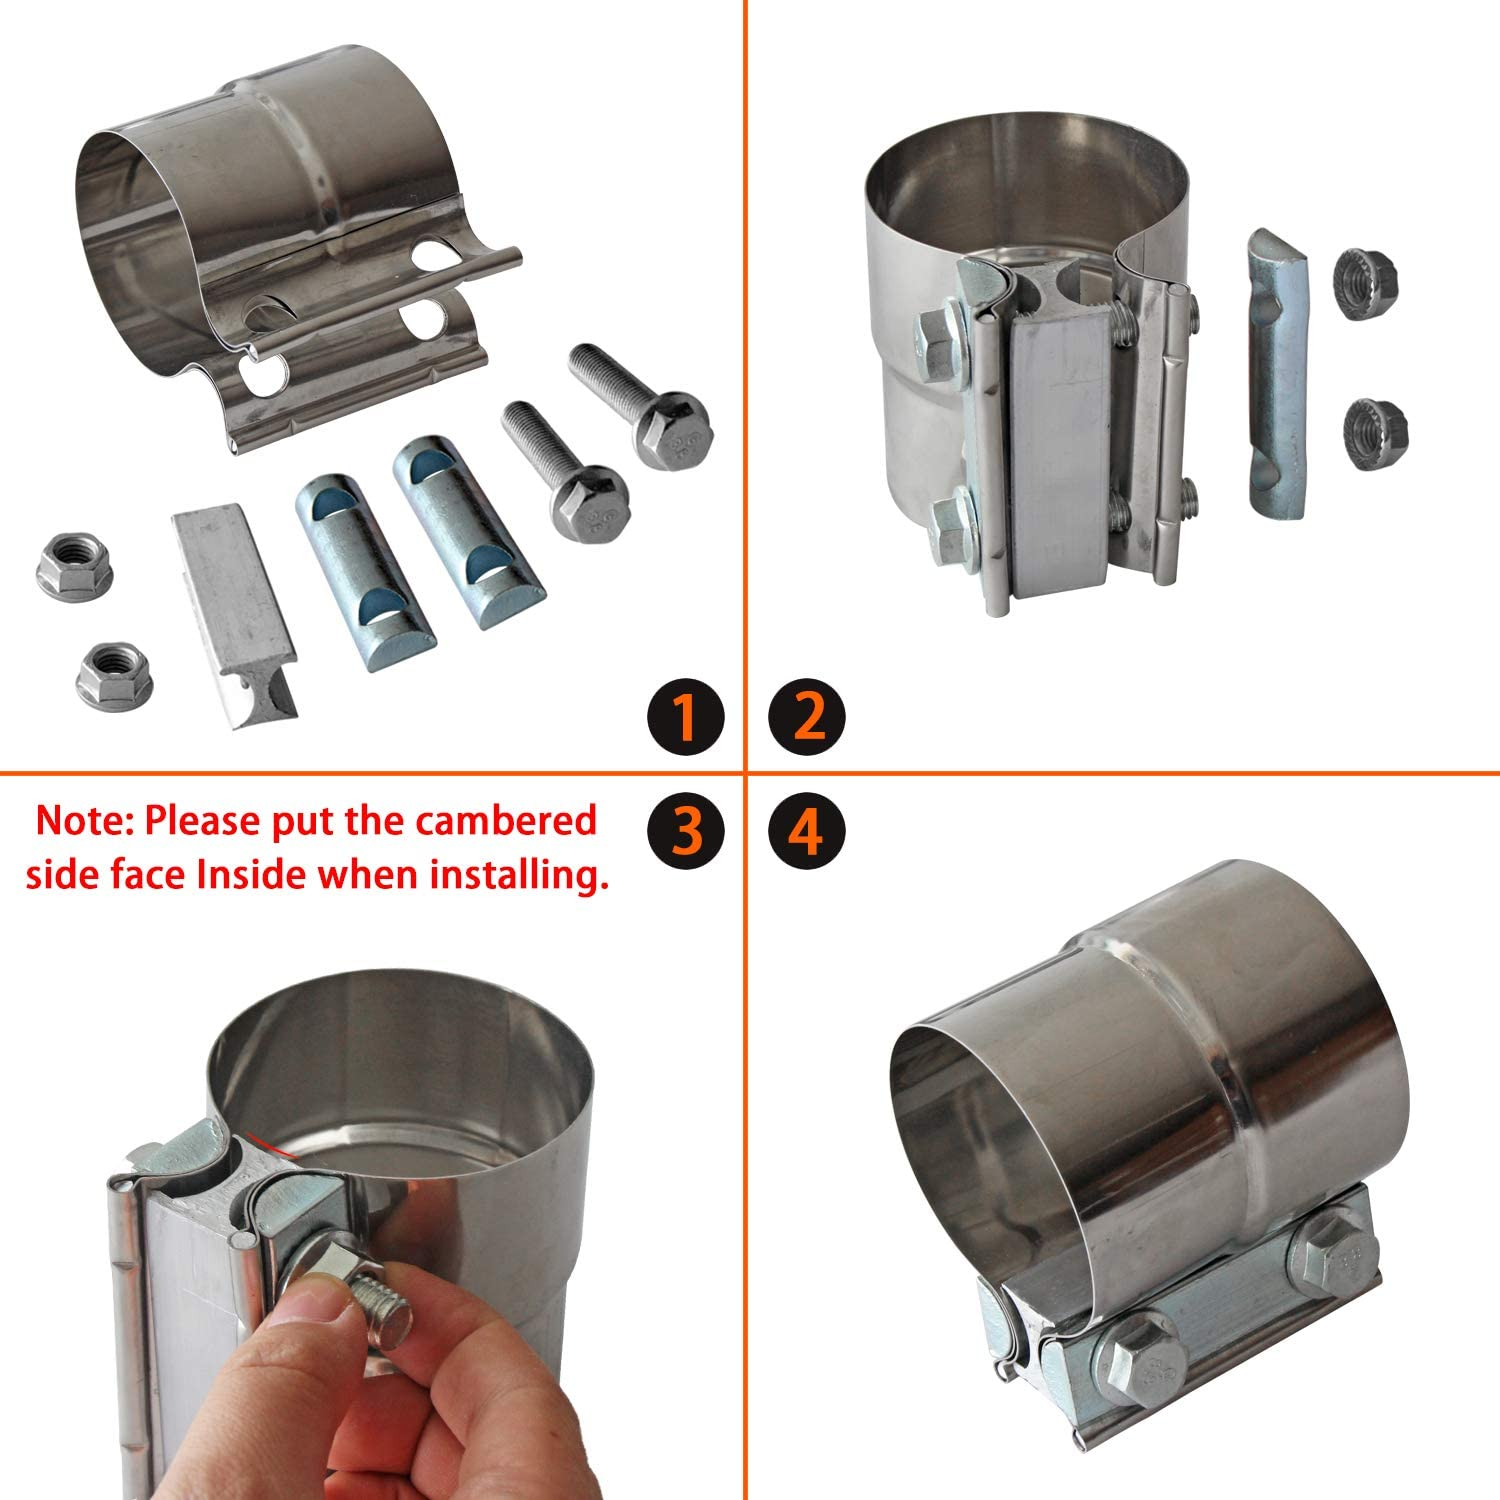 Stainless Steel Lap Joint Exhaust Band Clamp with 1 Block 2Pcs for 2.5 Od to 2.5 Id Exhaust Pipe 2 Pack Muffler Elbow and Exhaust Tubing Connection Exhaust Clamps Band Clamp 2.5 Lap Joint